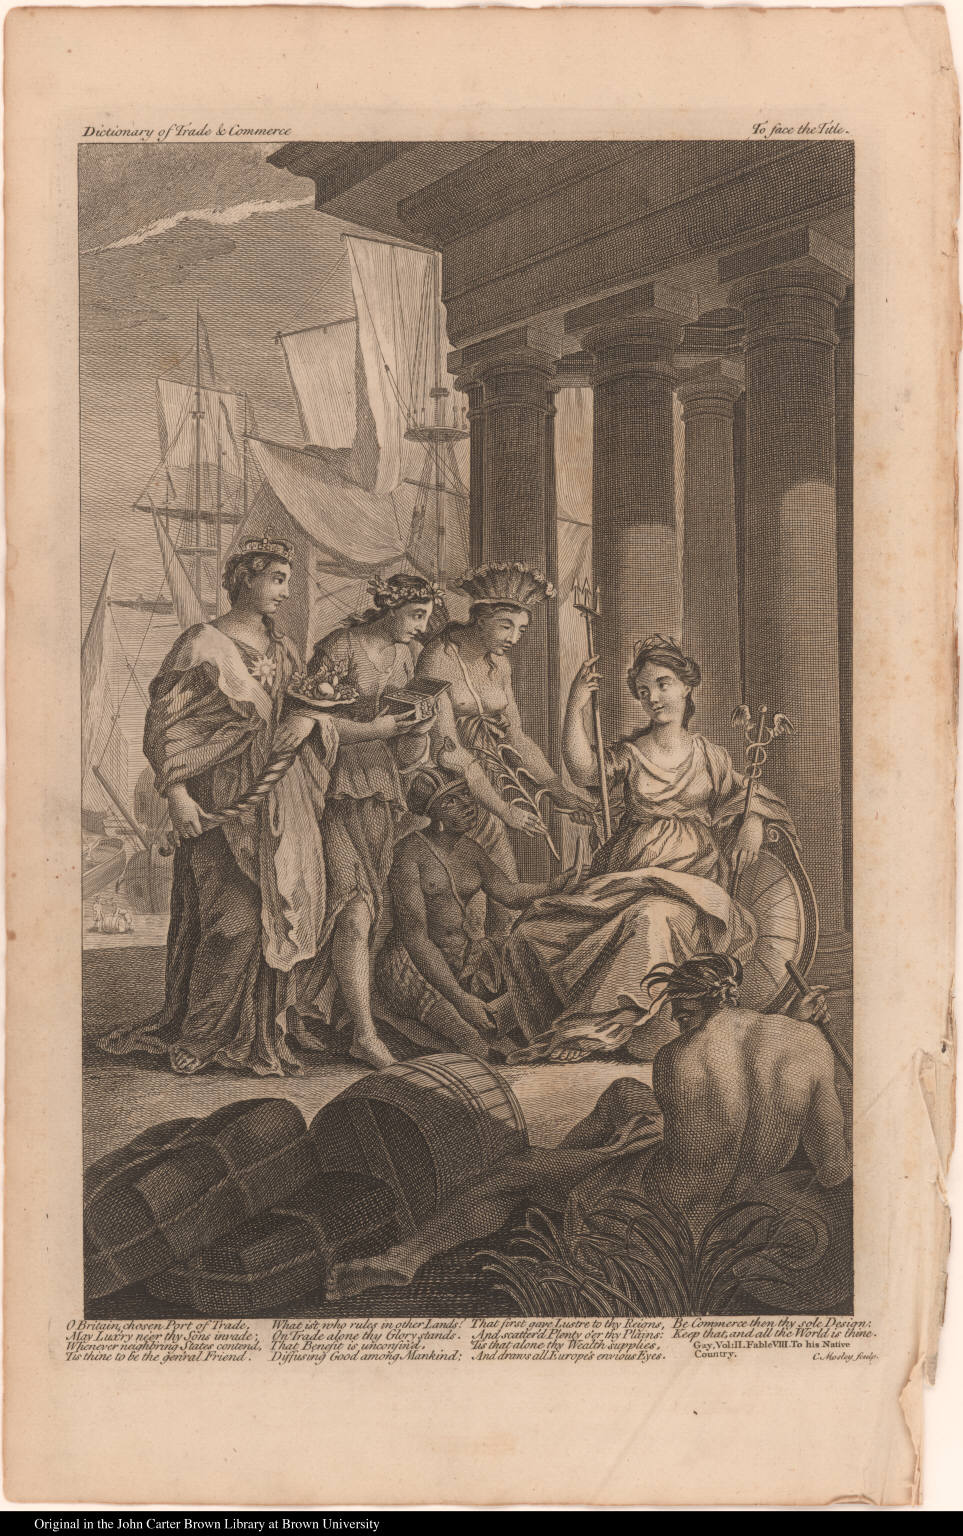 [Allegory of British commerce]